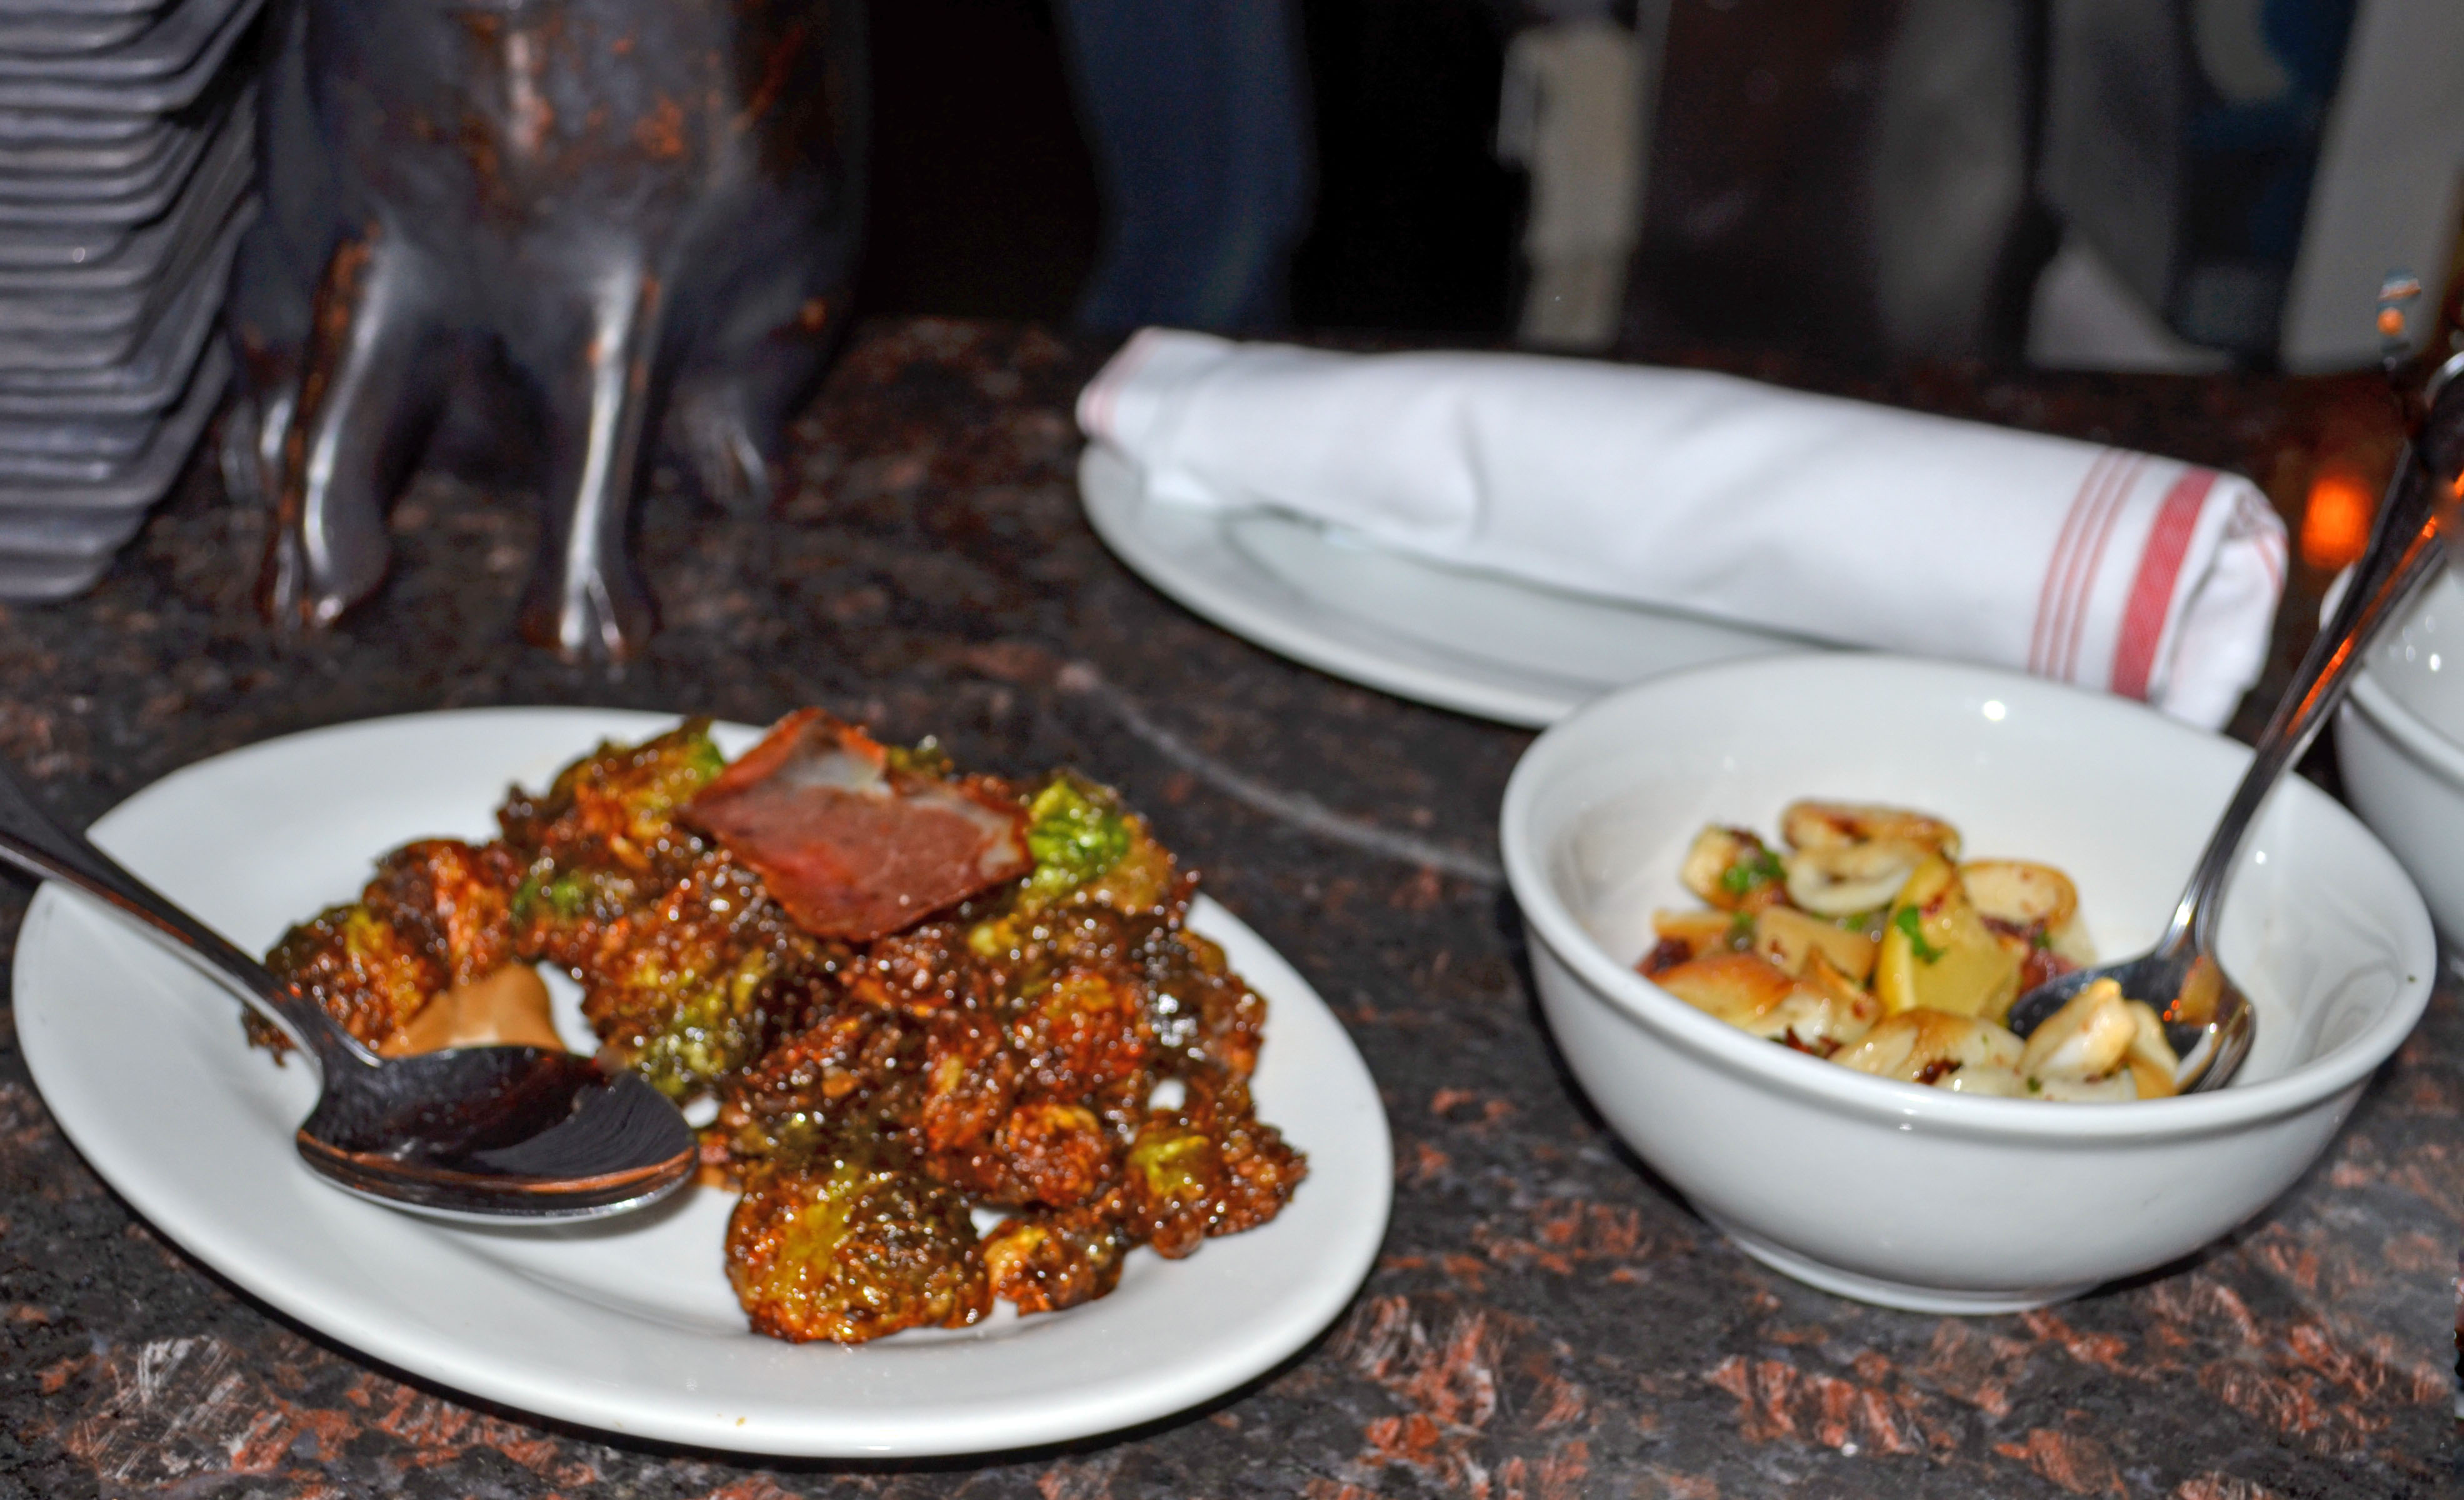 Birroteca's crispy brussels sprouts and tender calamari. (Photo by Francine Halvorsen)